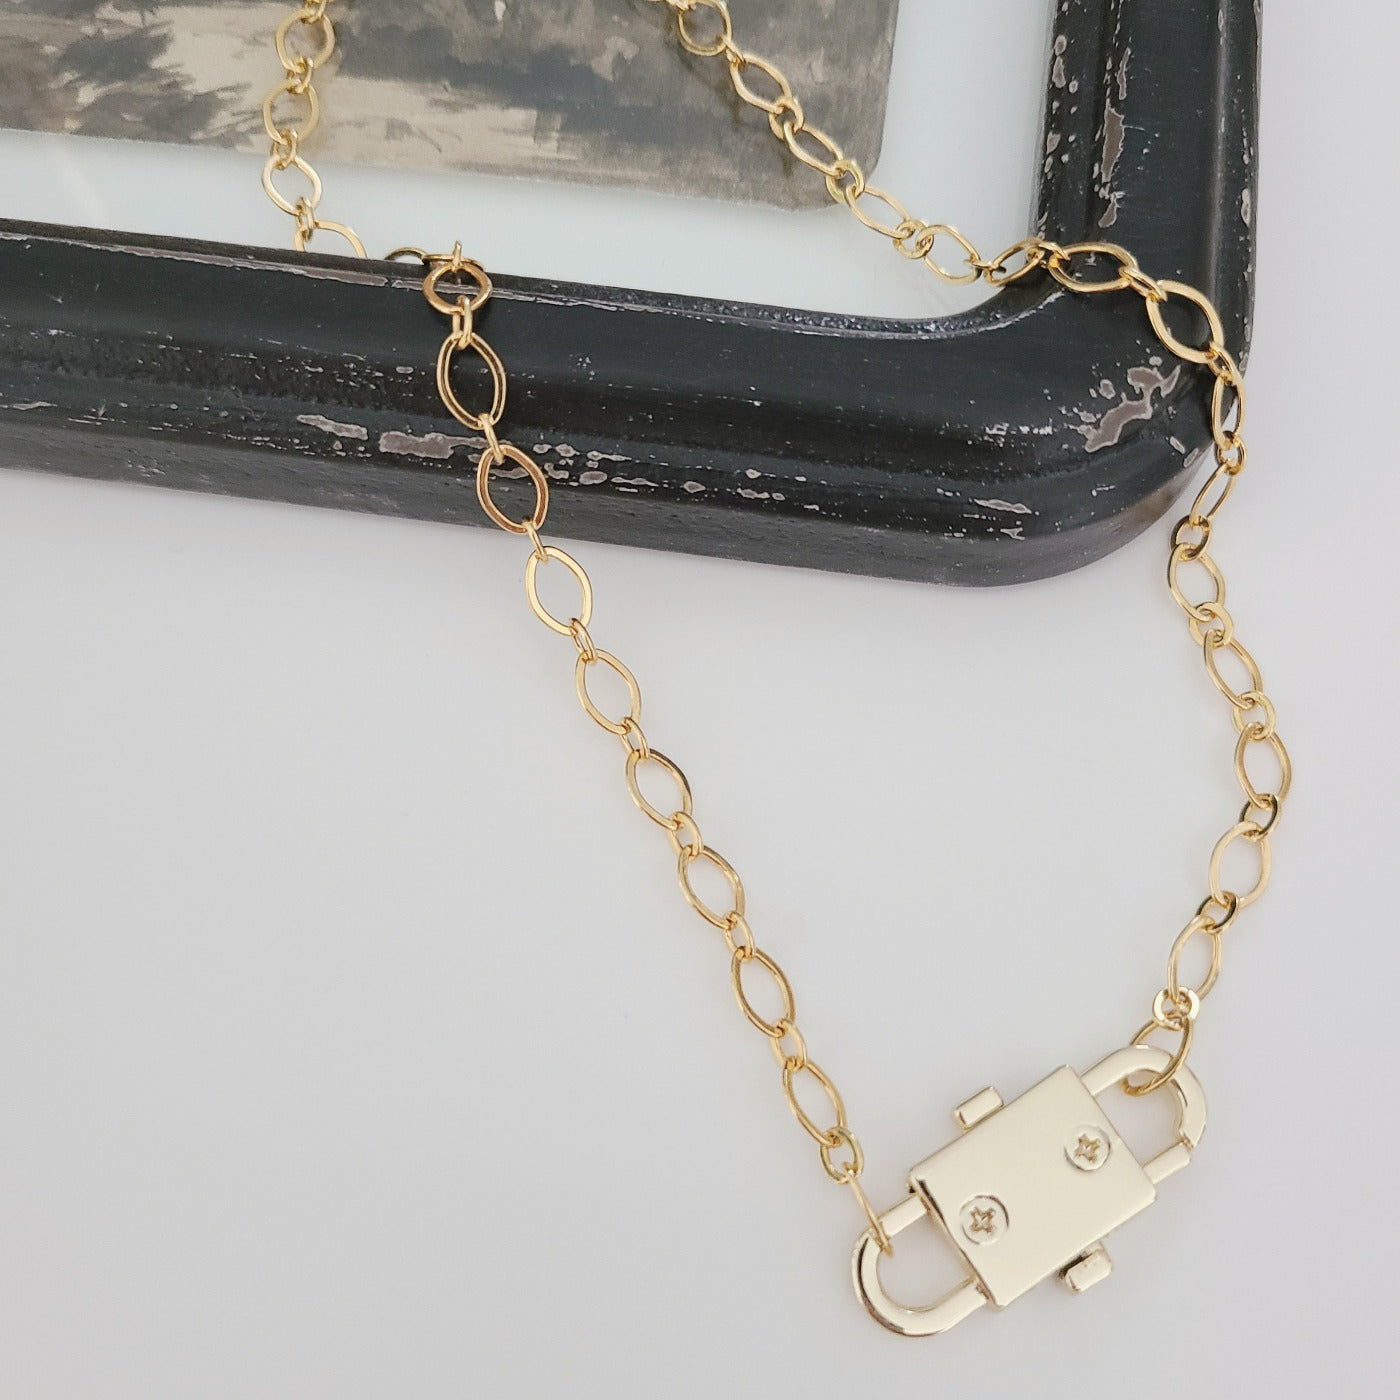 "Cool, Minimalist, unique and just the right amount of edge. Perfect on its own or layering it up. 14 or 16"" gold fill chain with double sided clasp. Clasp is 1 1/4"" long."